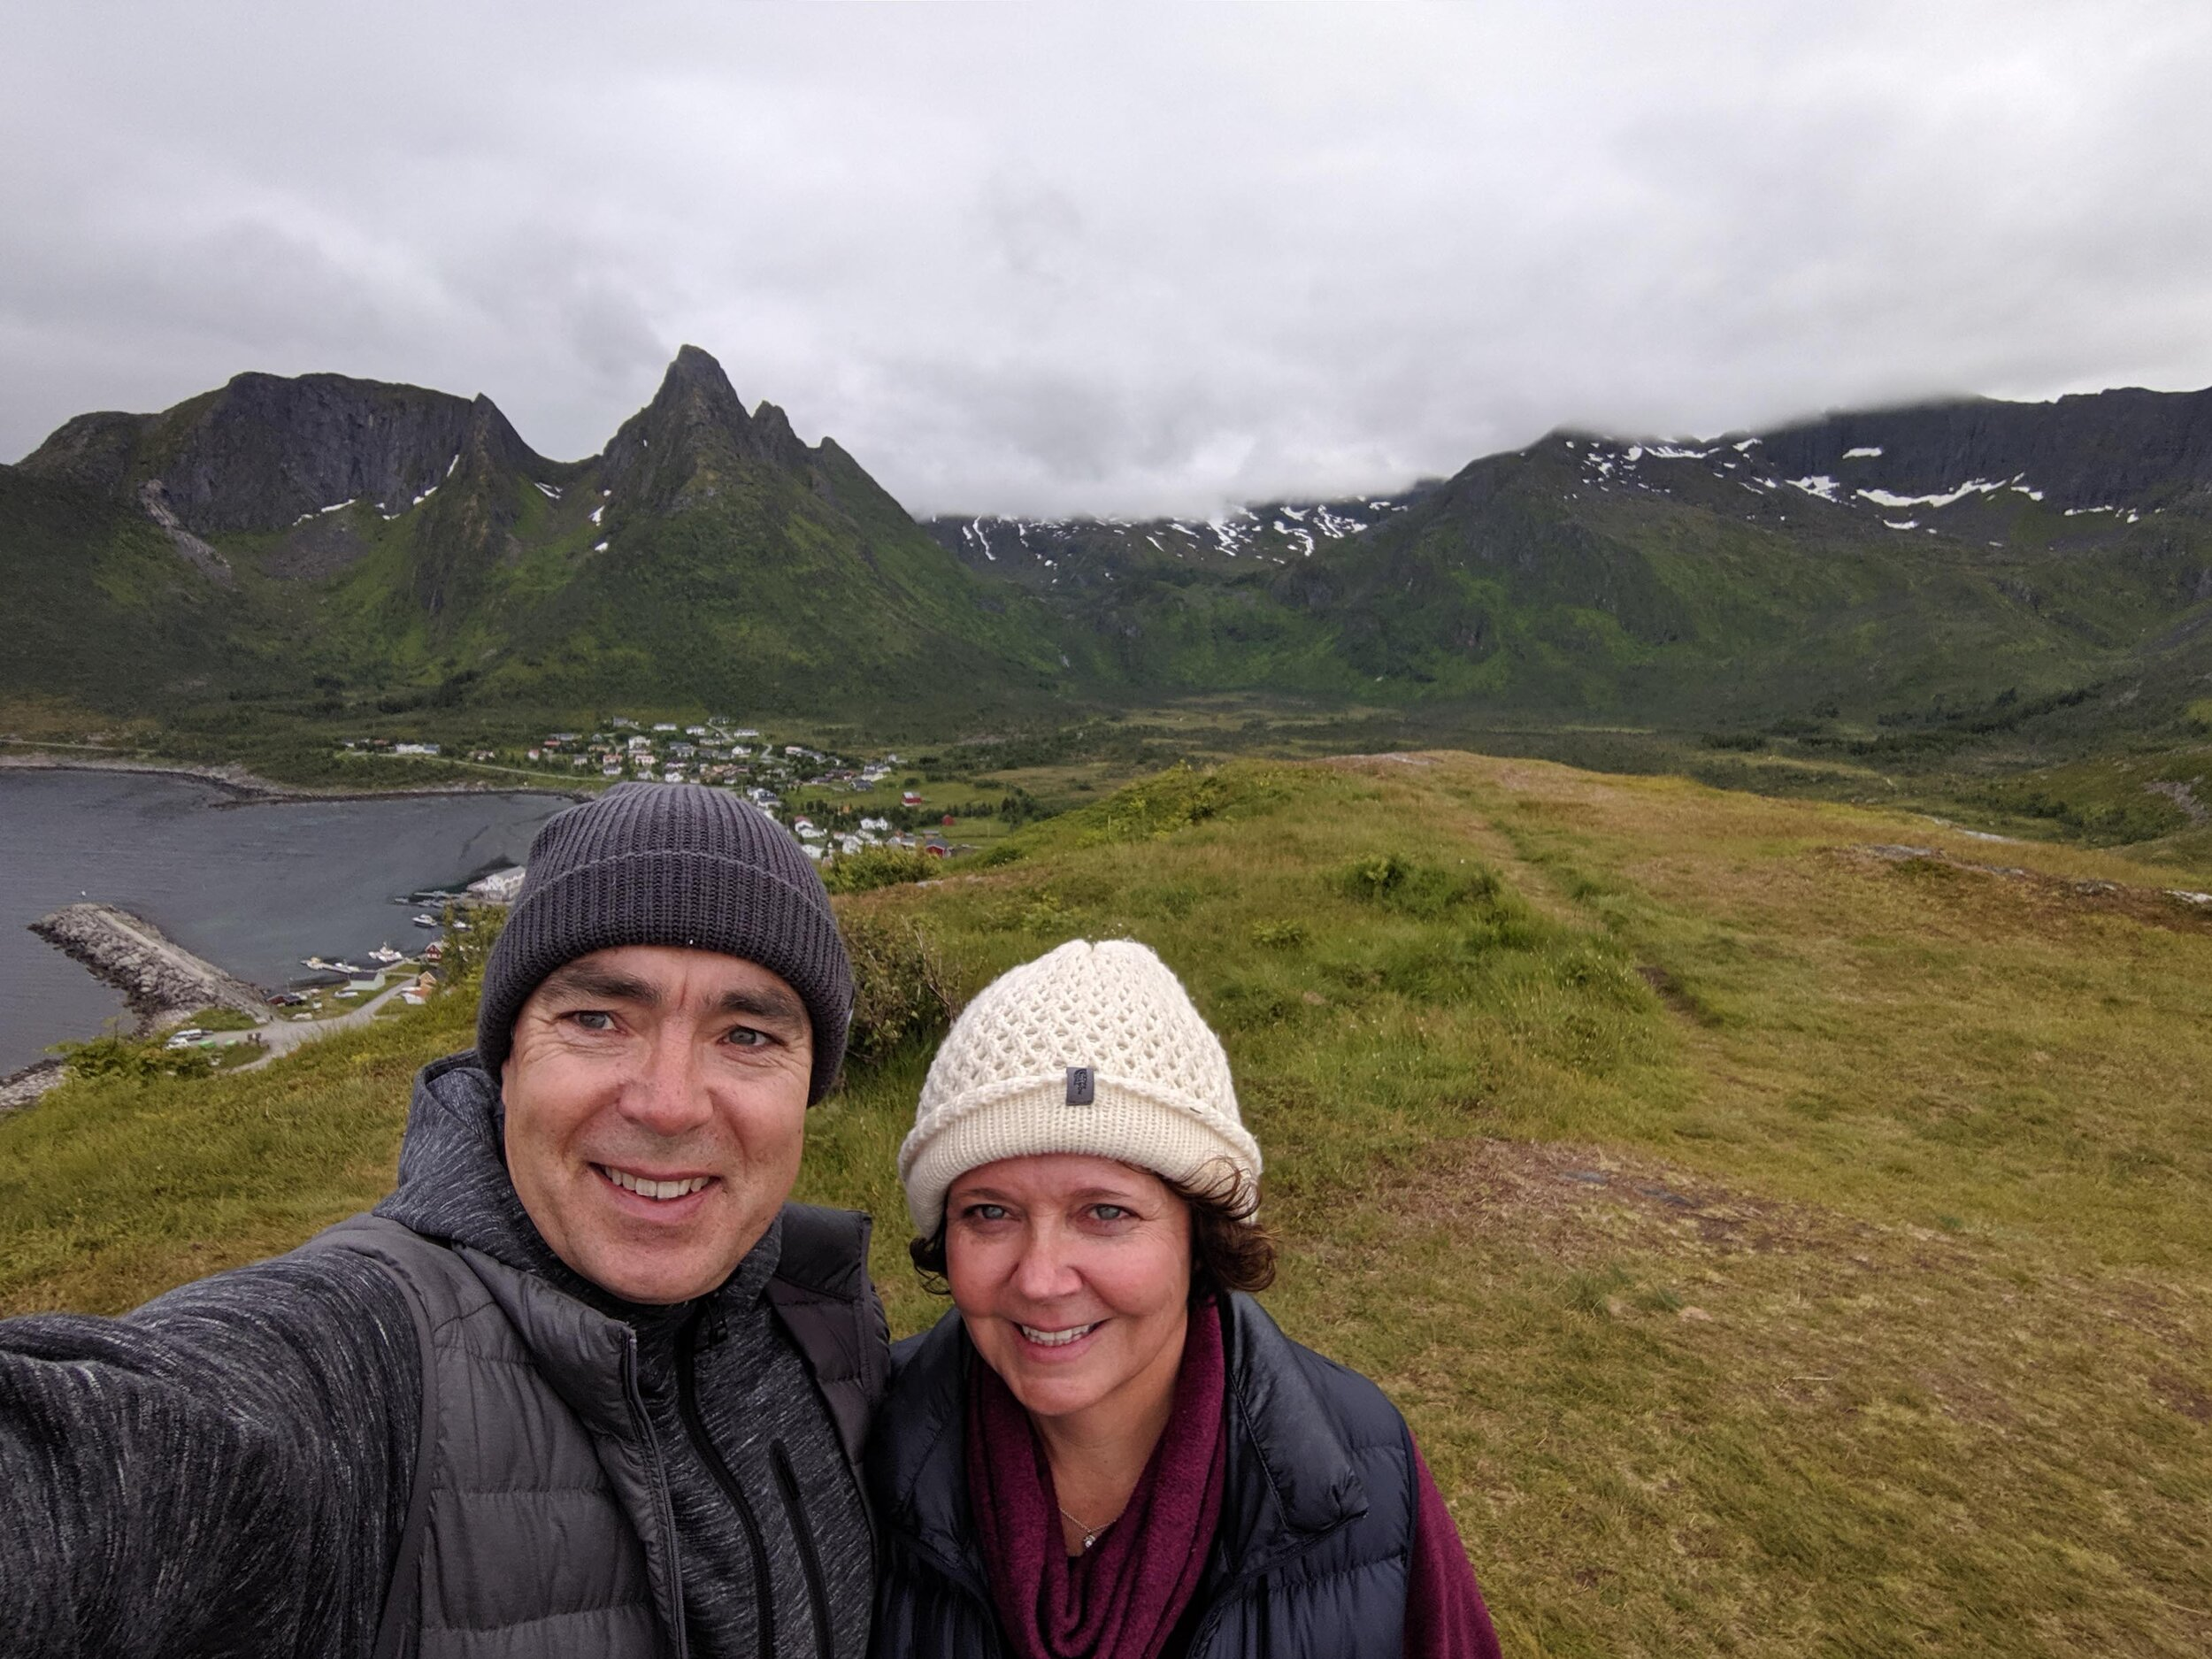 Braving the cold and wet to get some better views at Mefjord